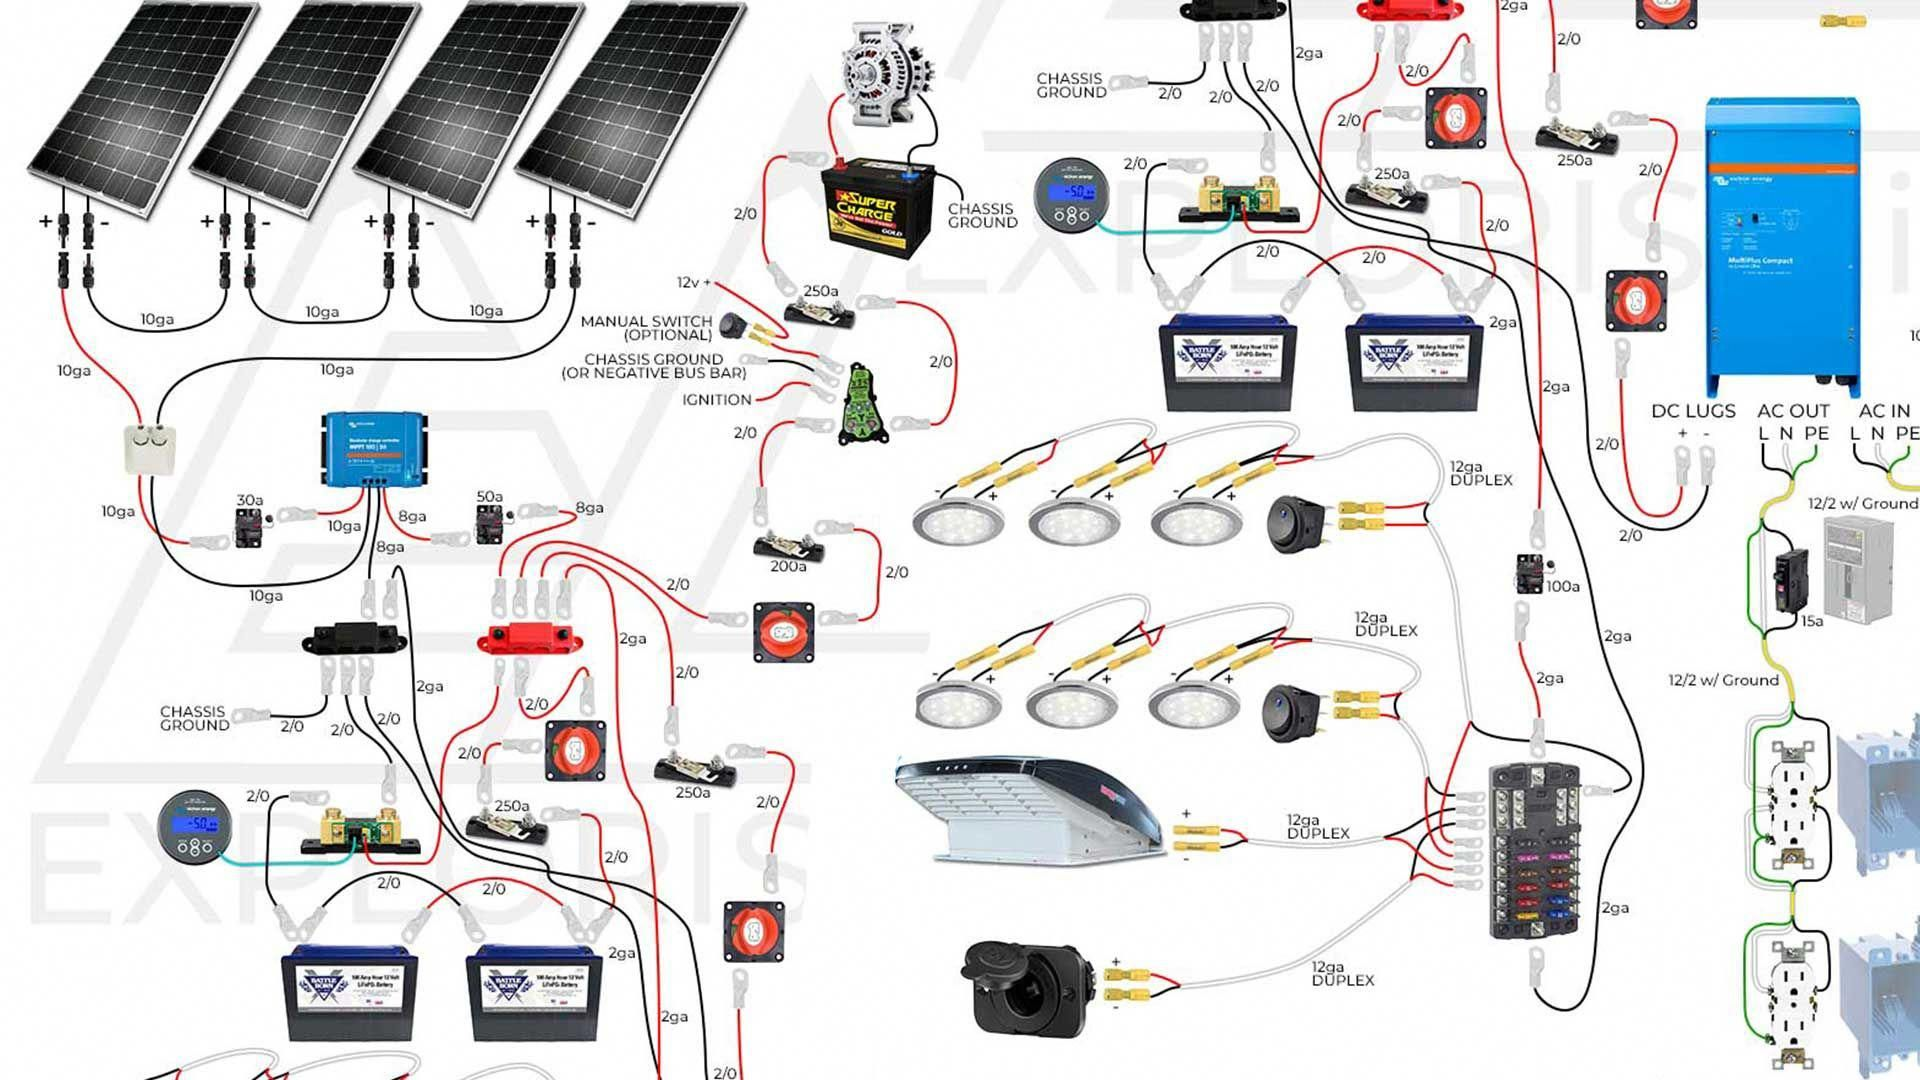 These interactive solar wiring diagrams are a complete AZ